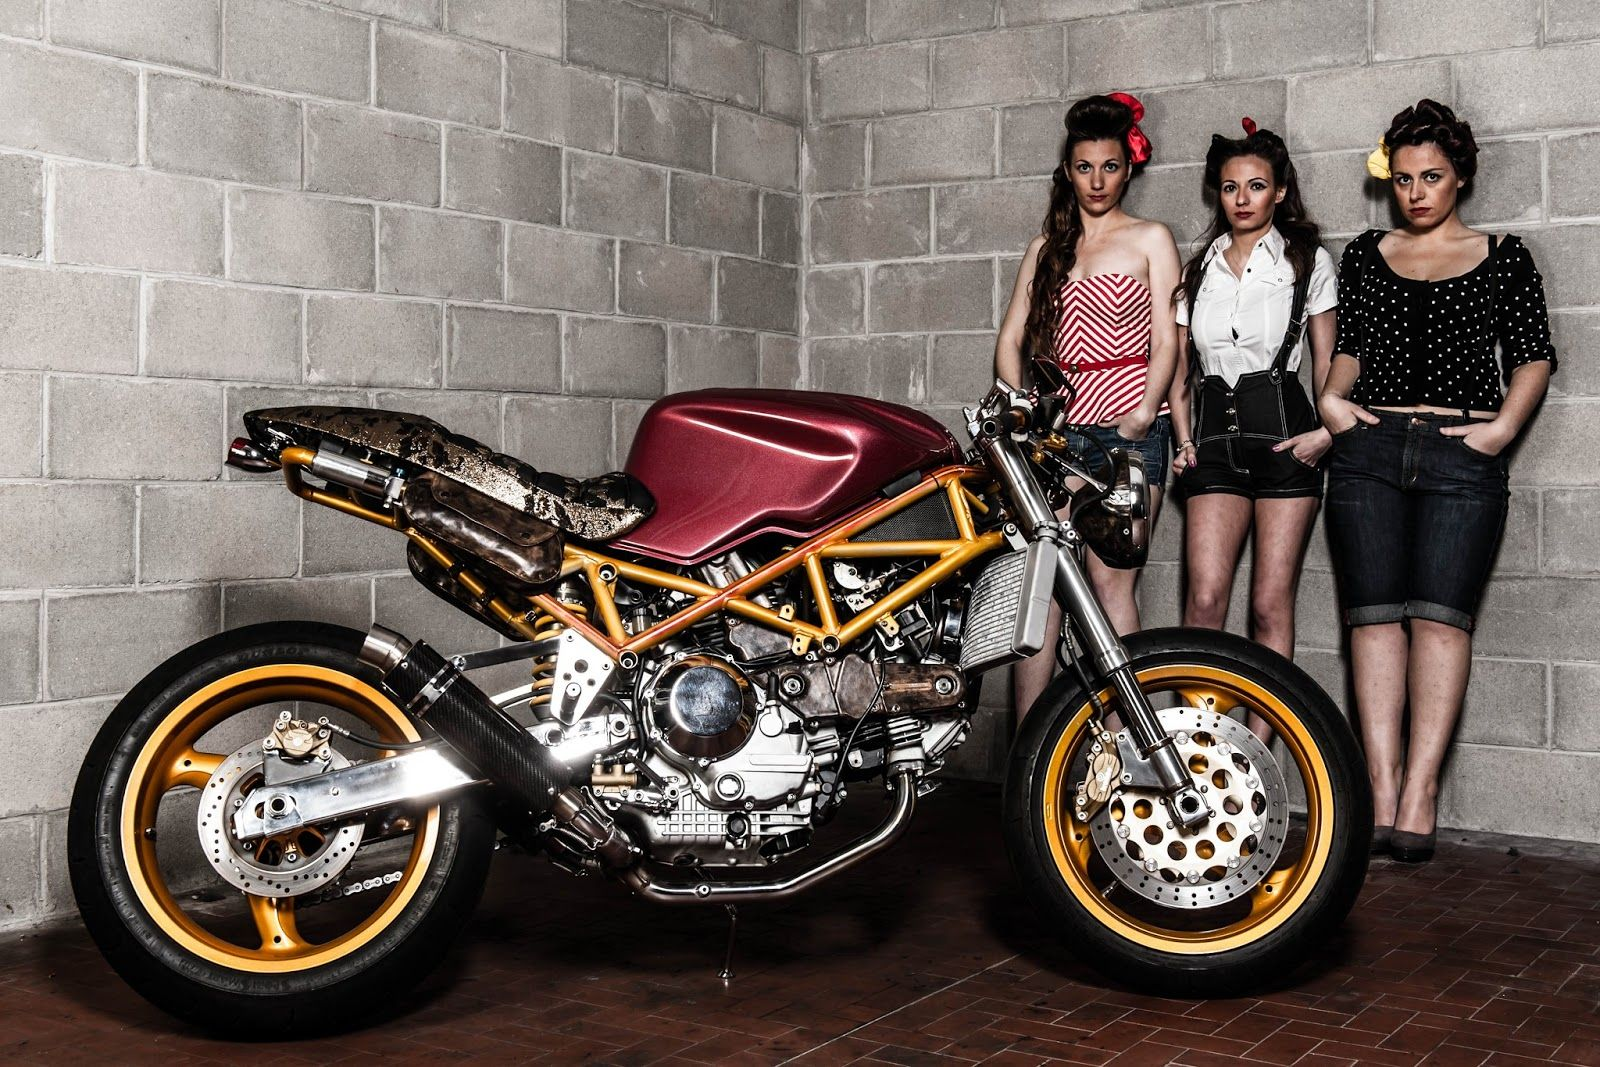 Lady Motorcycle Racers Ducati Cafe Racer Motorcycles Ducati Cafe Racer Cafe Racer Ducati